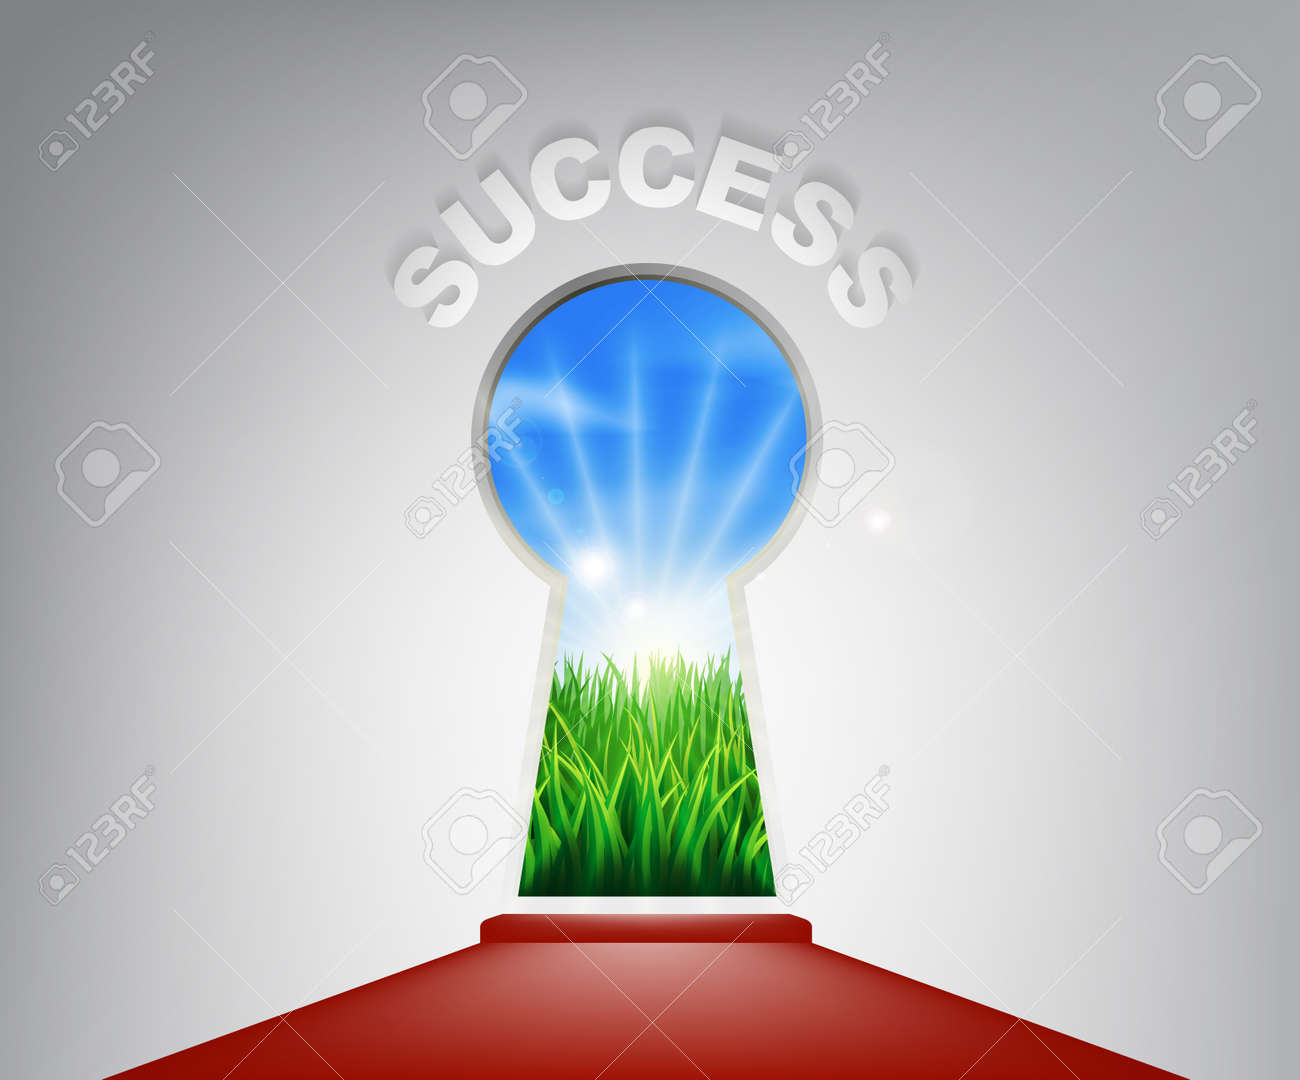 A conceptual illustration of a keyhole entrance to success opening onto a field of lush green grass. Concept for a new life or opportunity Stock Vector - 25954170